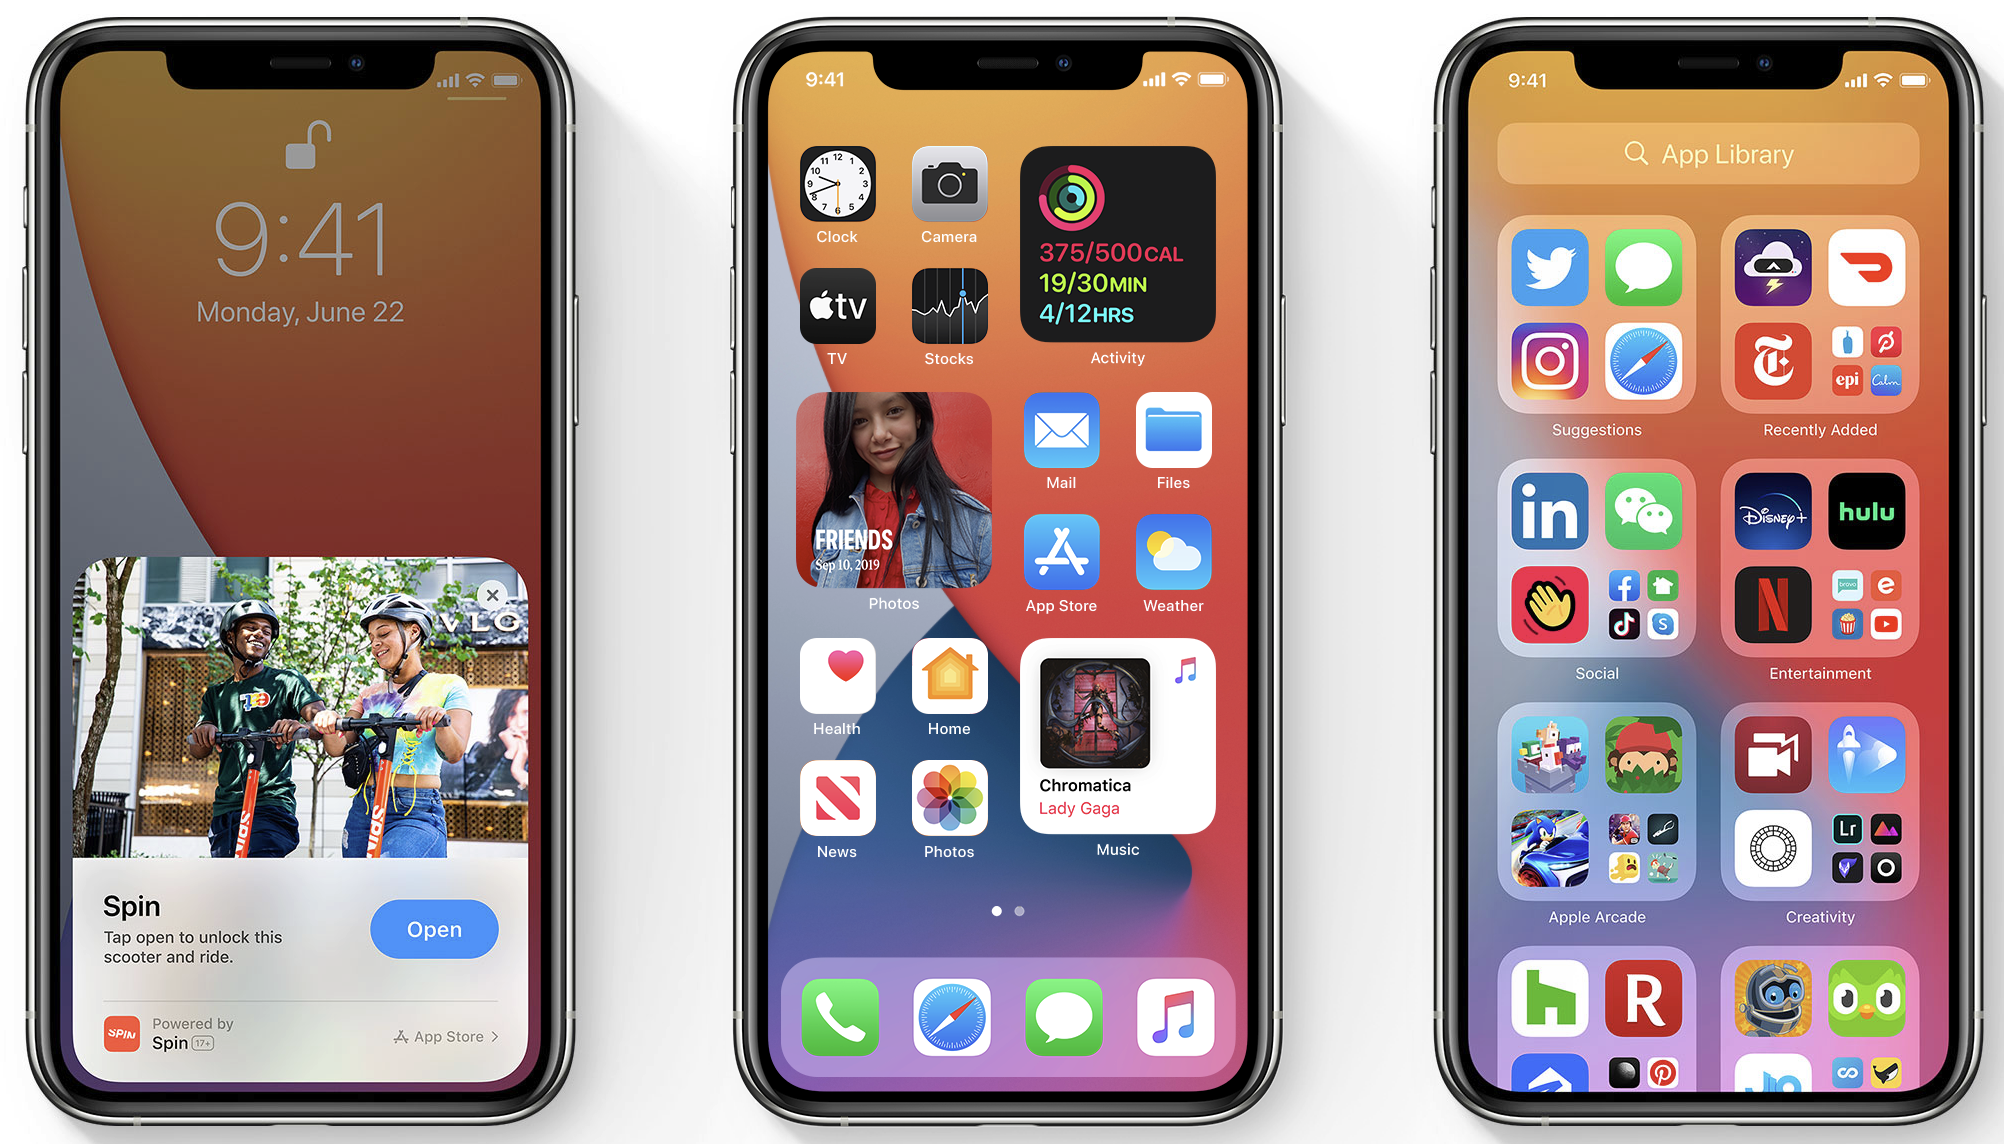 How the get the most of iOS14